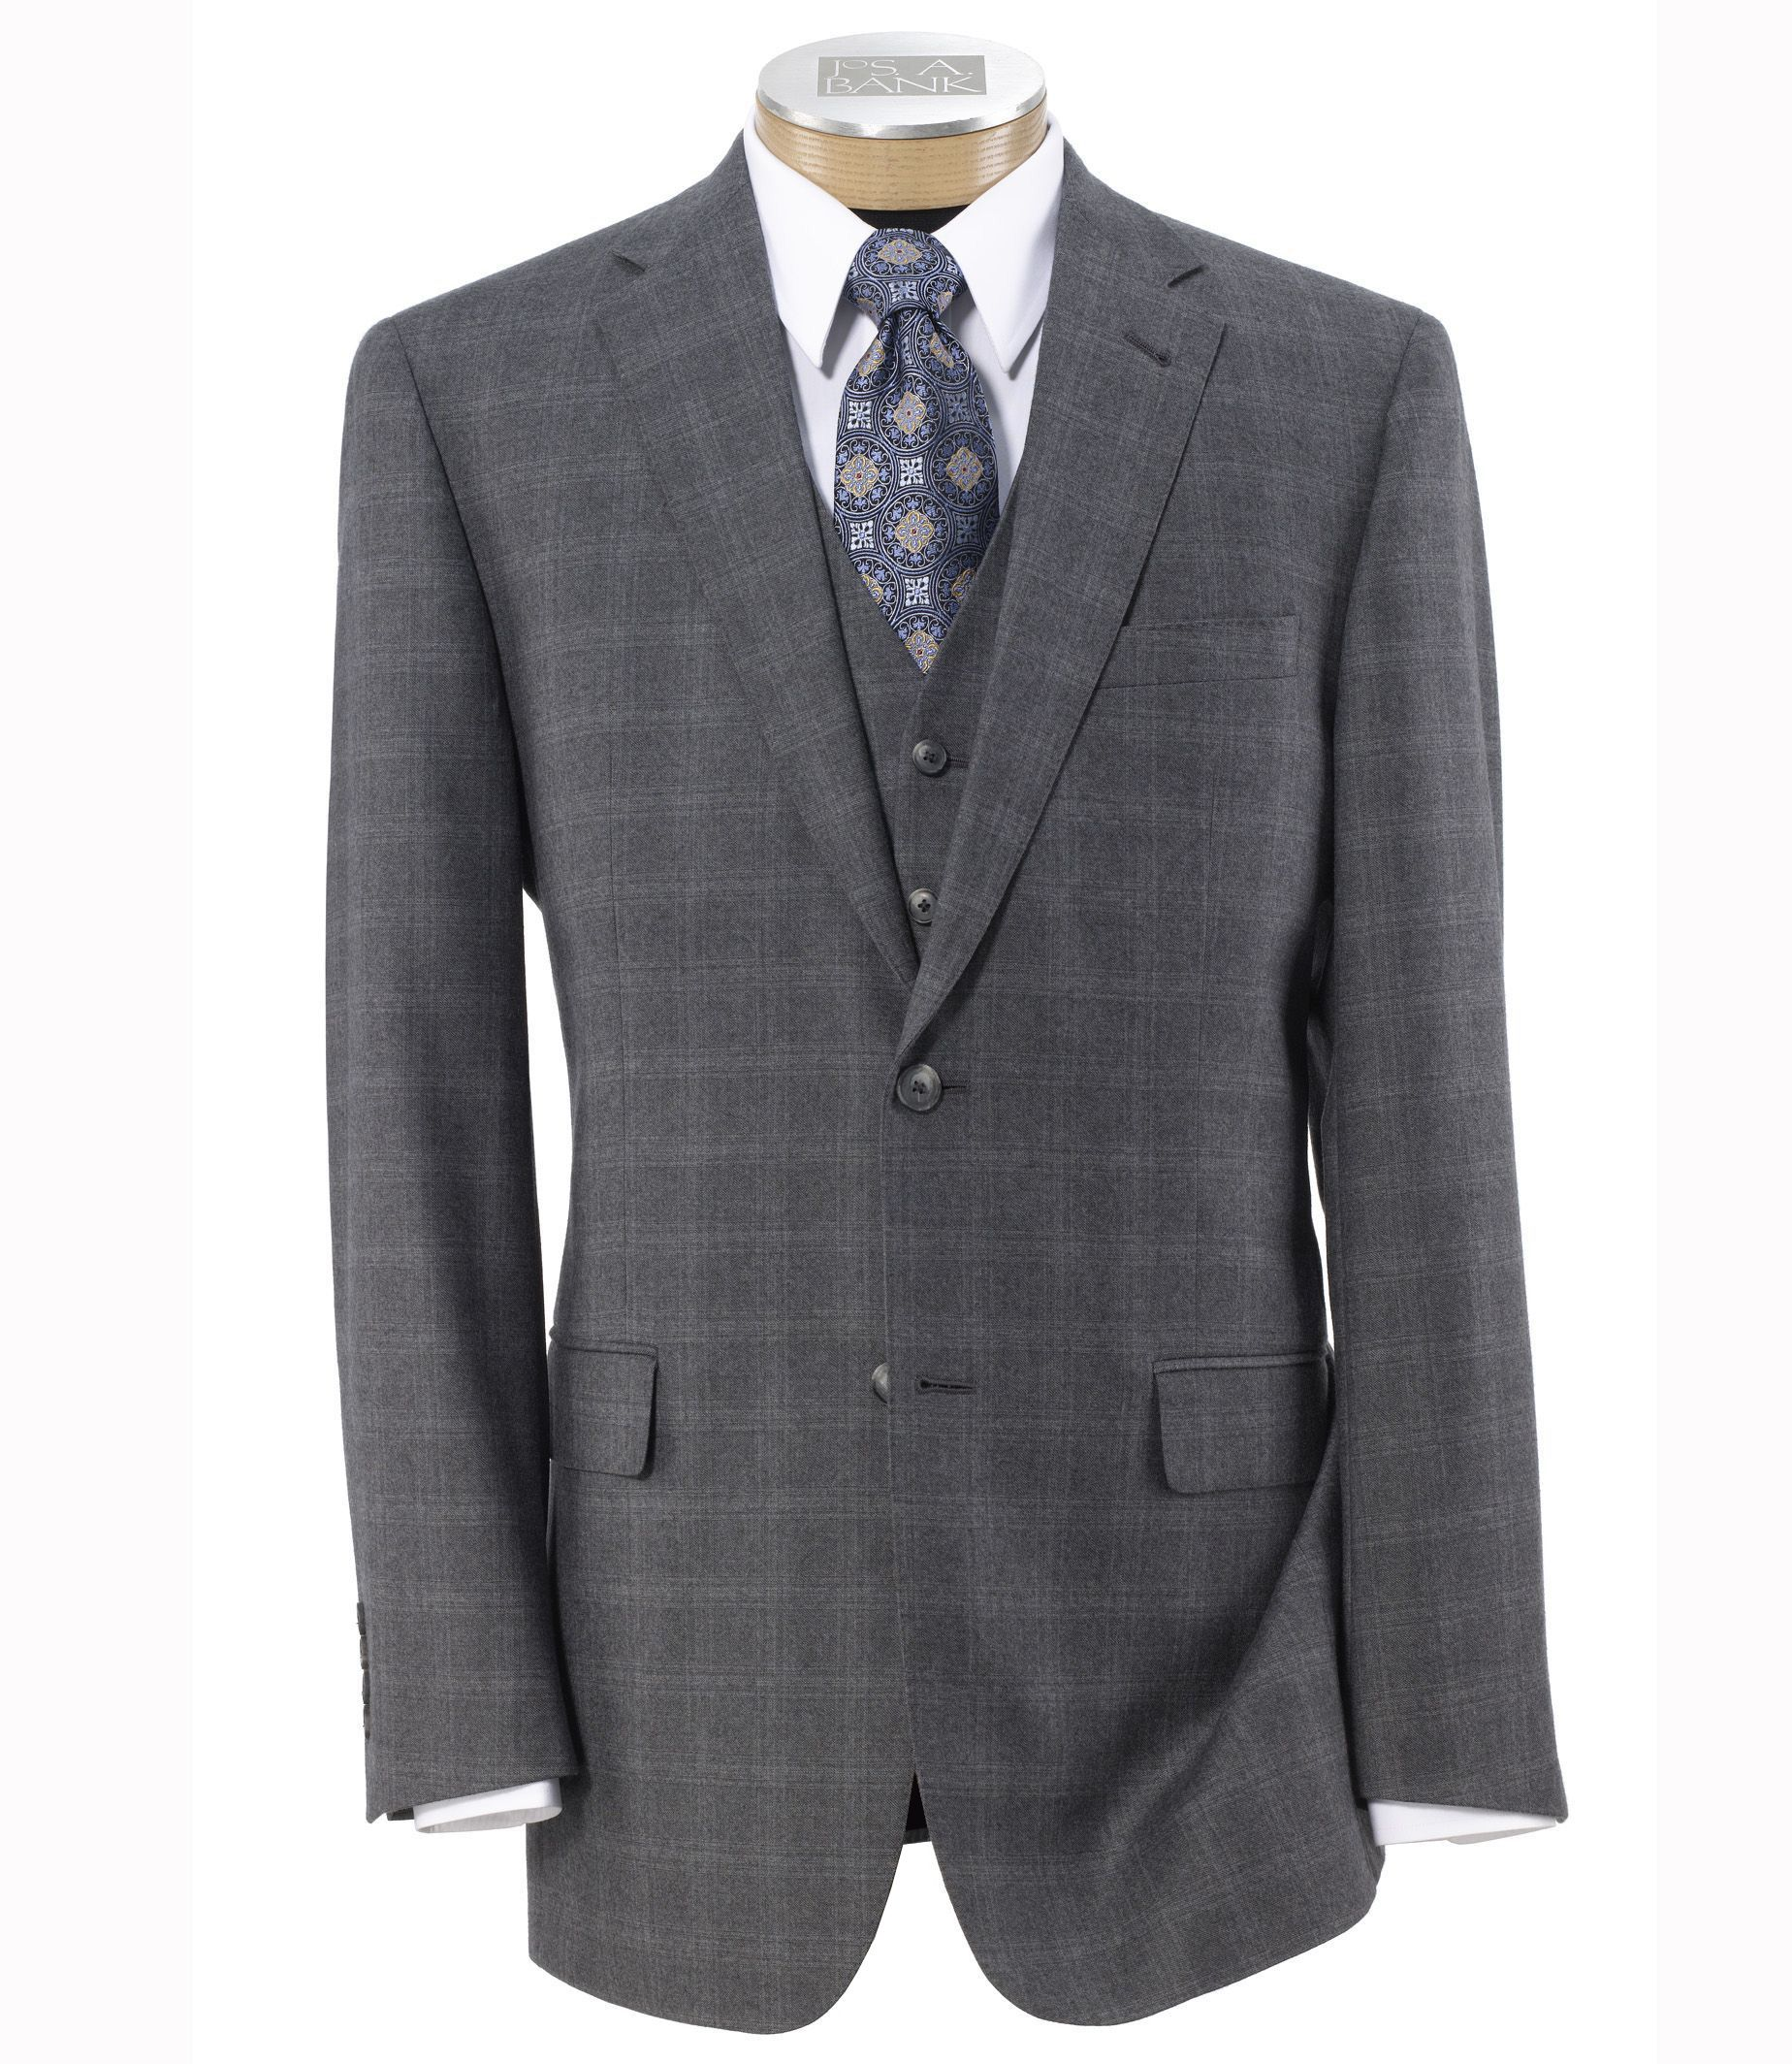 Joseph 2 Button Wool Vested Suit with Pleated Trousers- Light Grey Windowpane